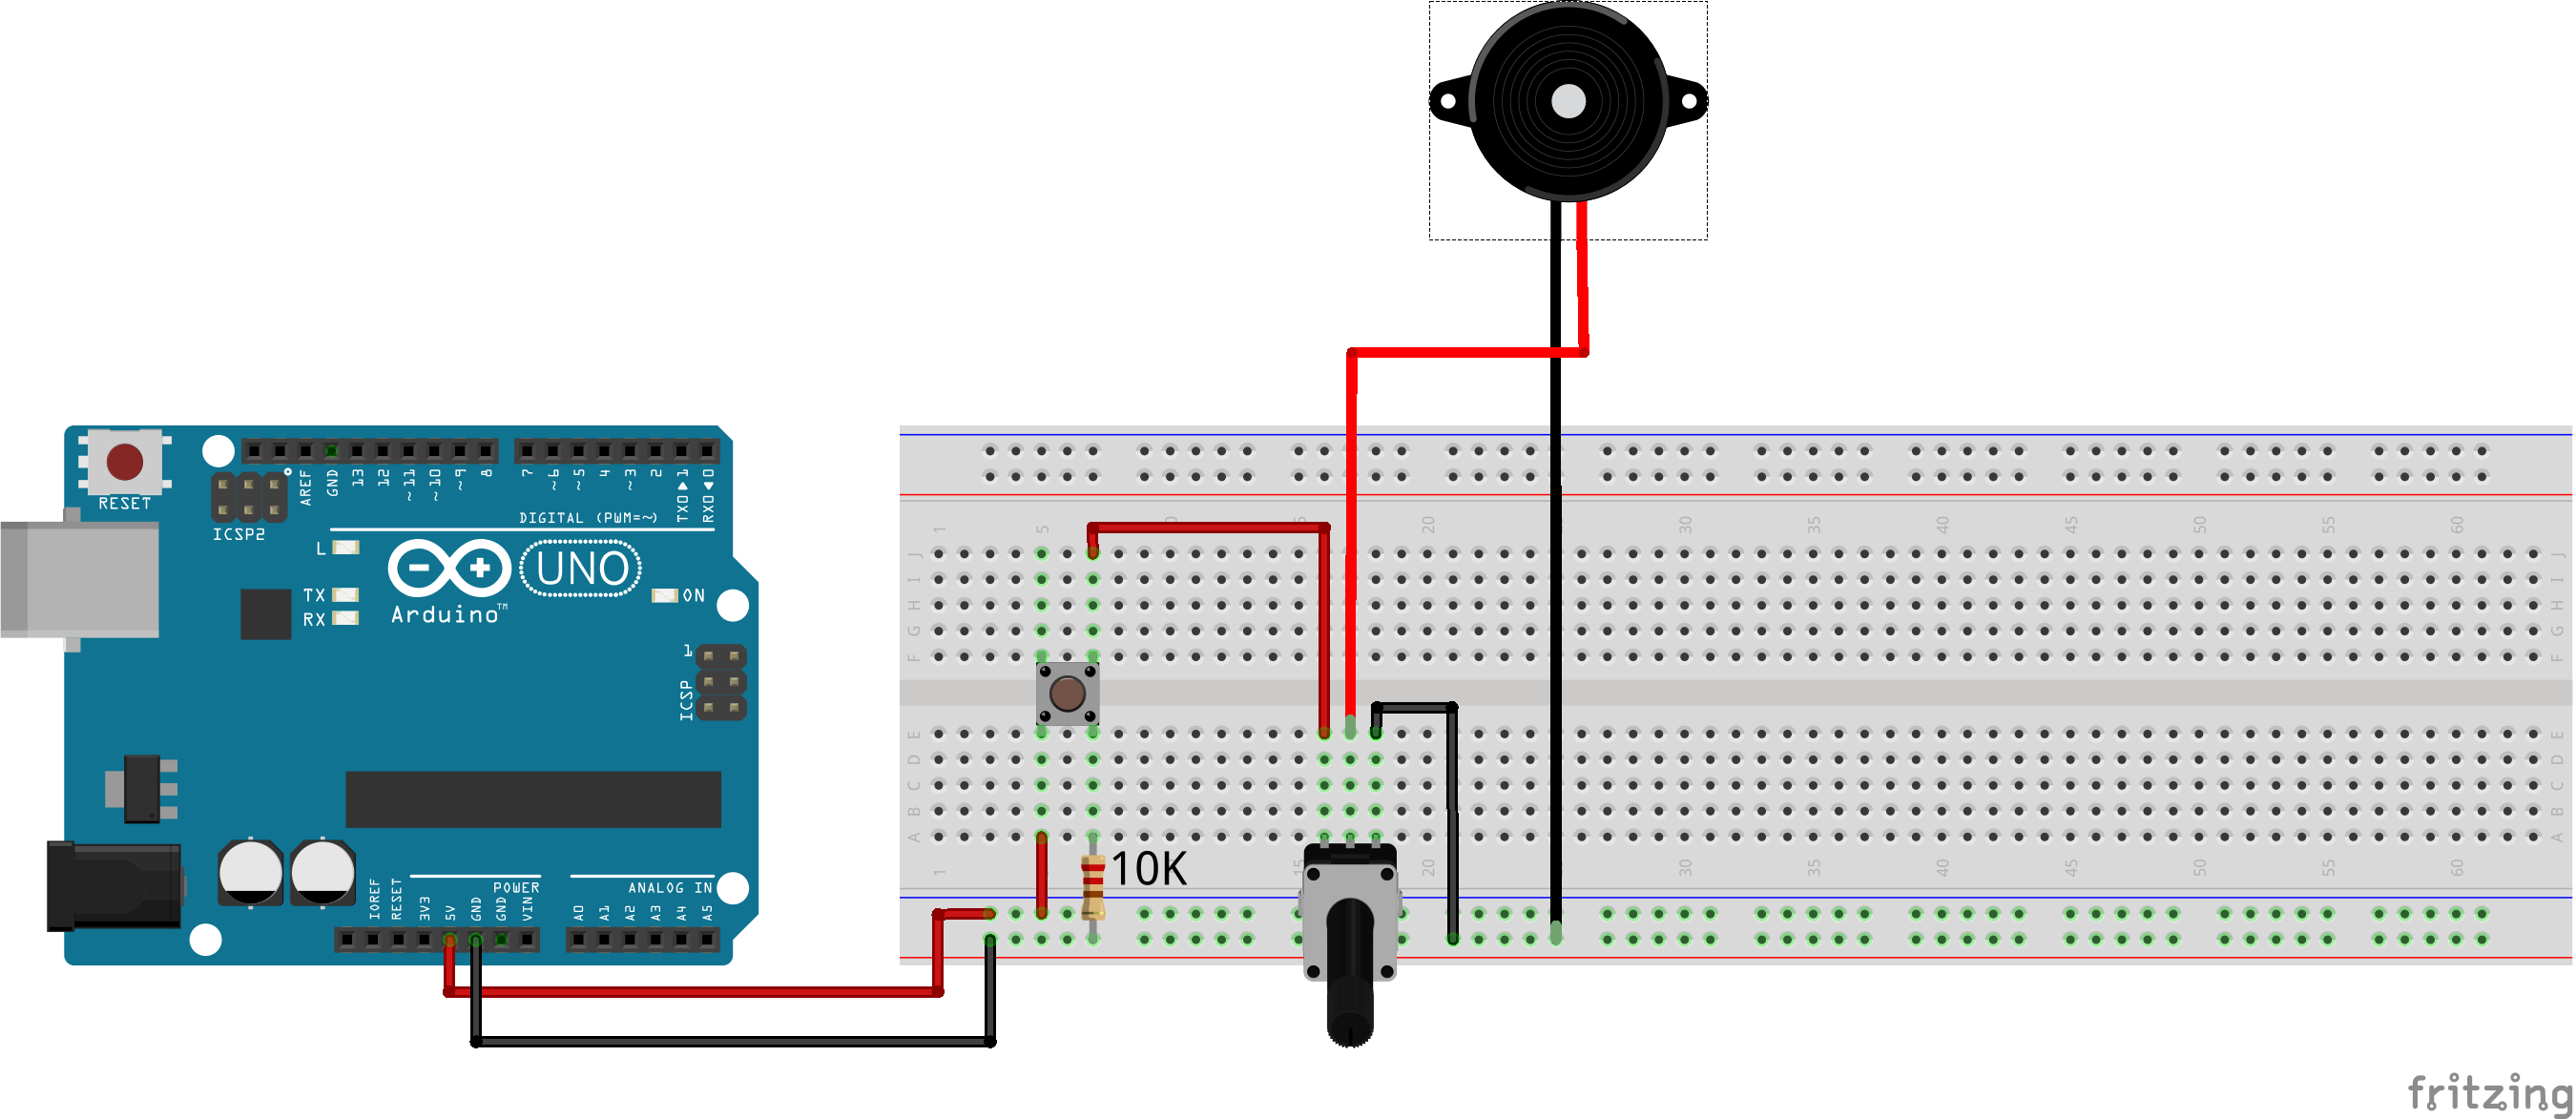 Incredible Arduino Uno What Is The Correct Way To Wire A Piezzo Buzzer With A Ranpur Mohammedshrine Wiring Digital Resources Ranpurmohammedshrineorg